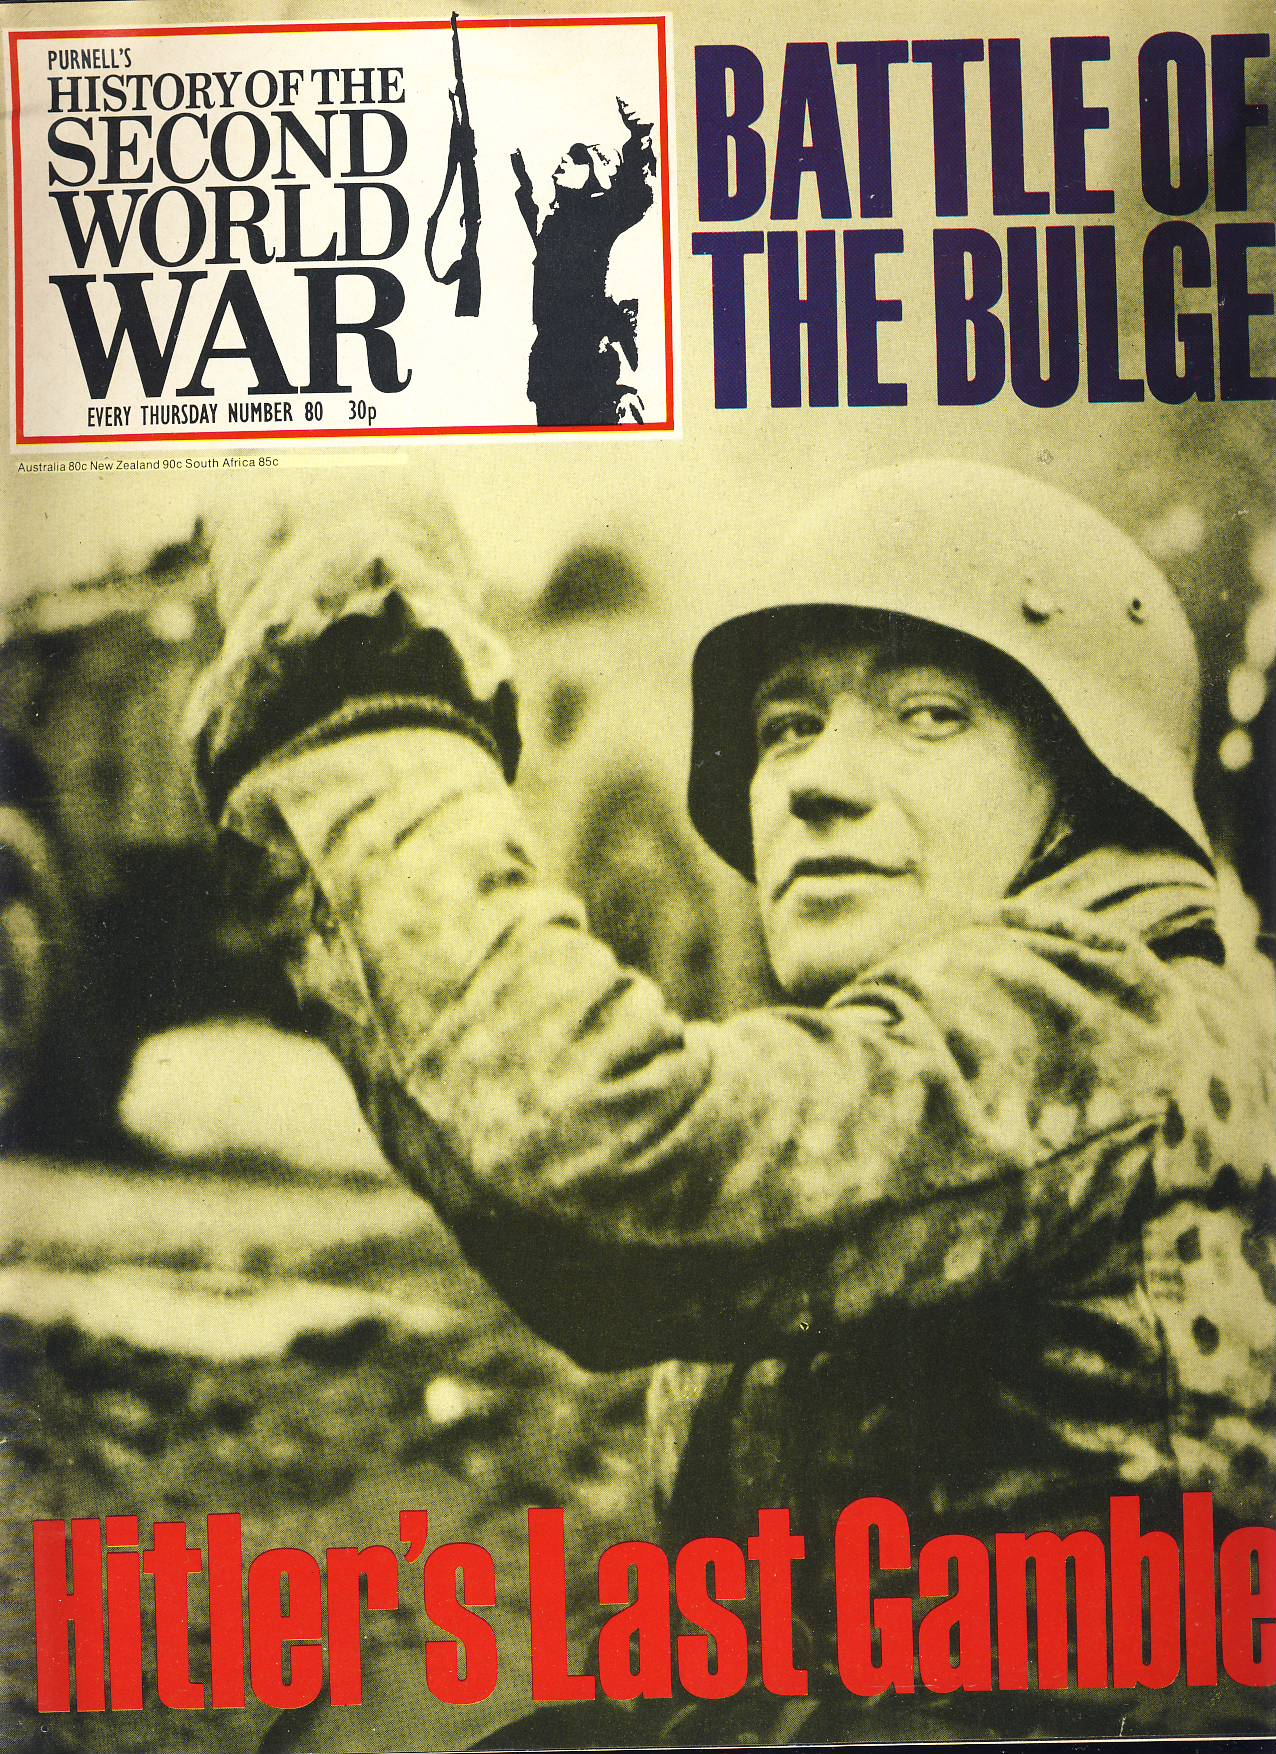 History of the Second World War Magazine #80 HITLER'S LAST GAMBLE Battle of the Bulge A vintage Purnell's weekly magazine in good read condition. Please see larger photo and full description for details.